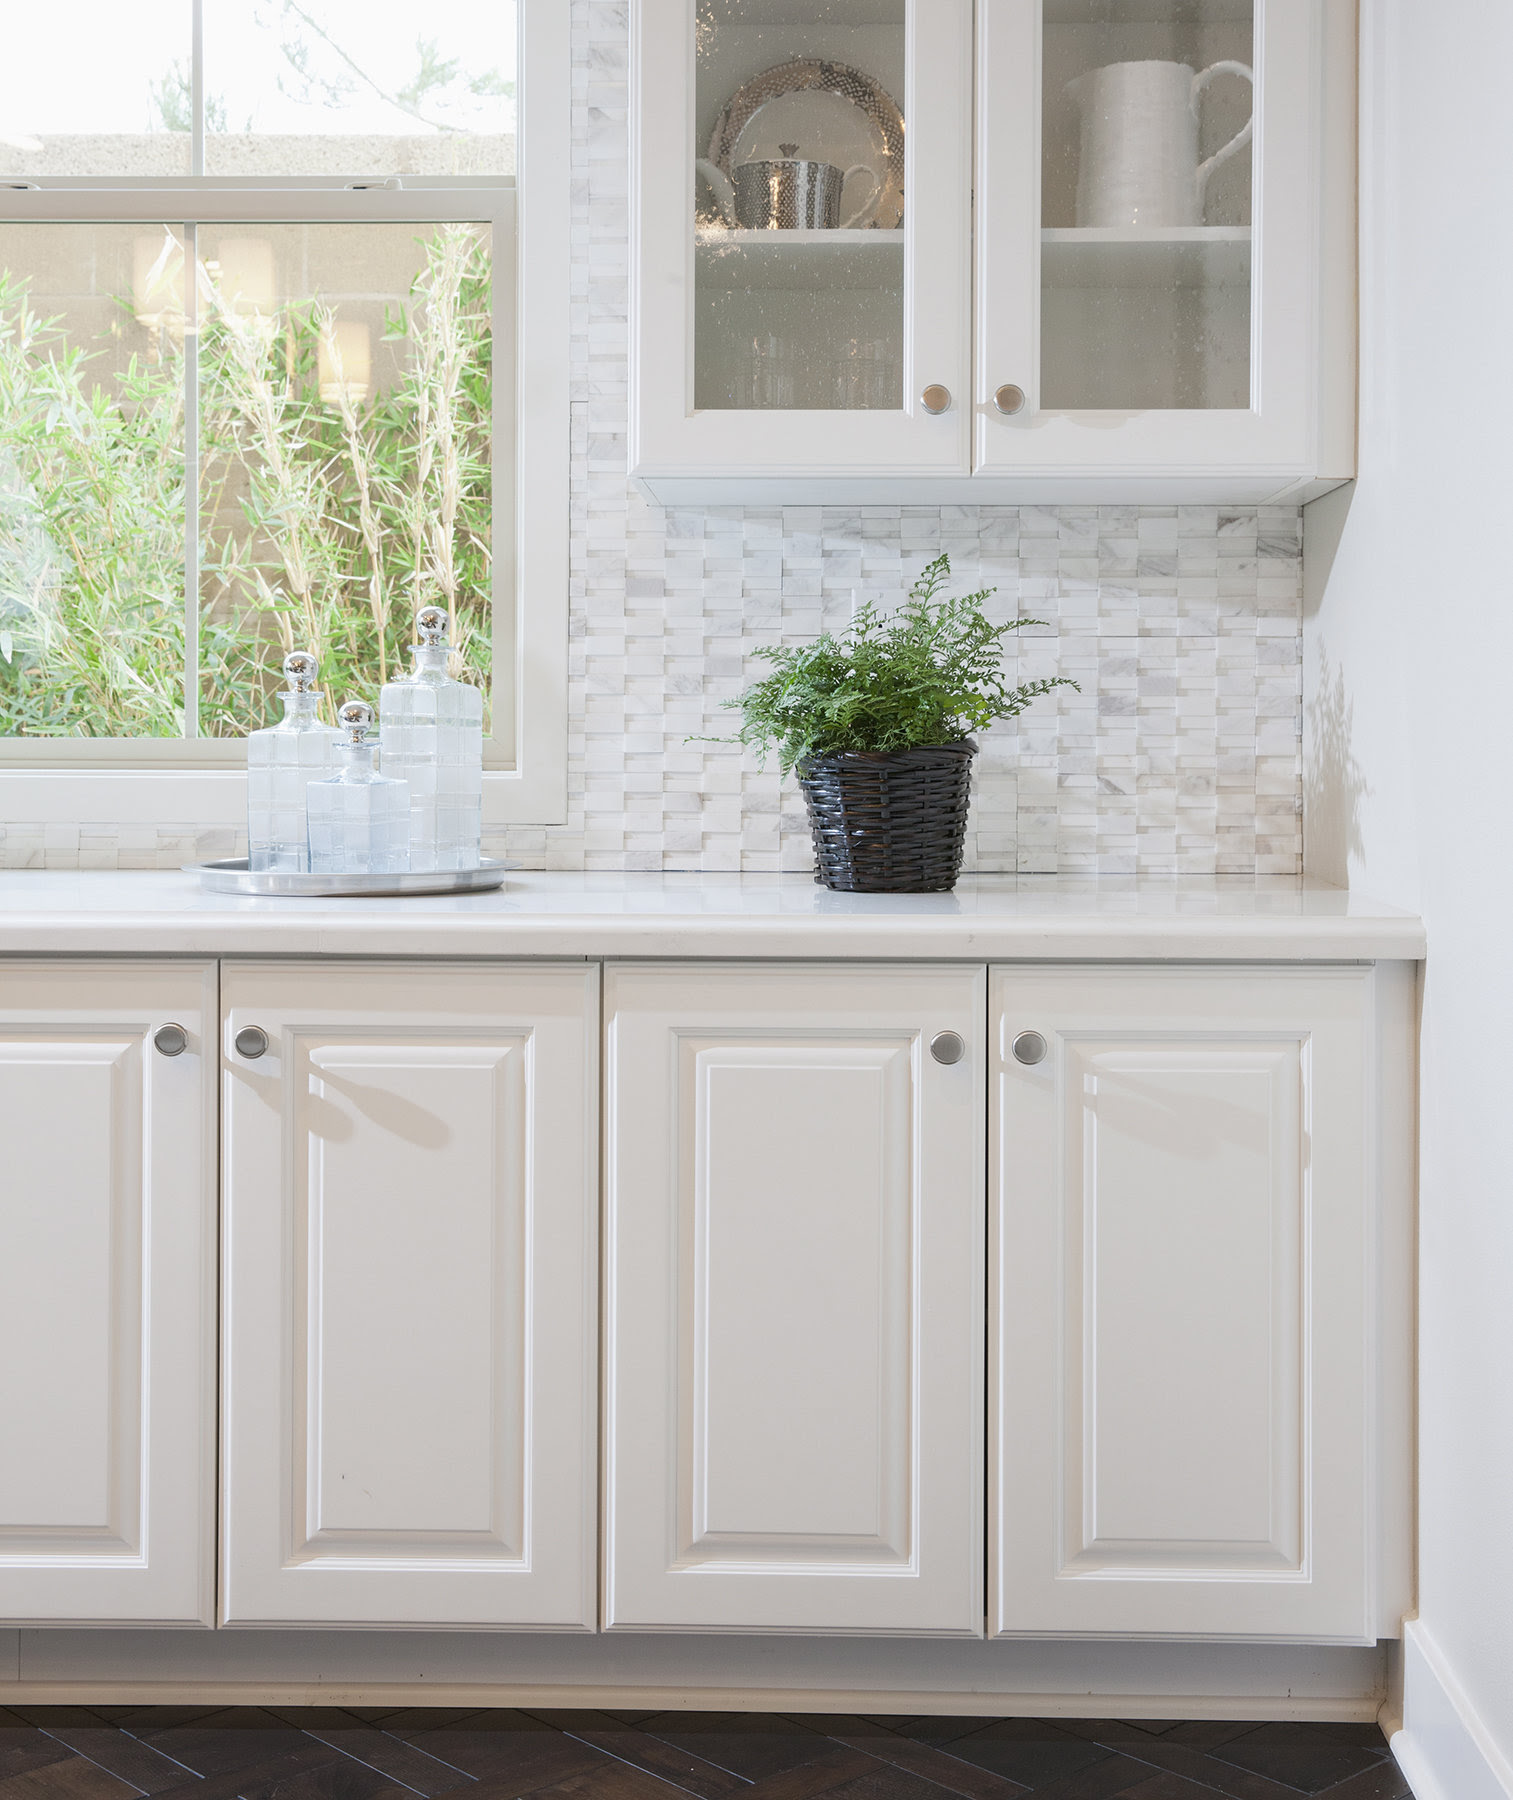 Raised Panels on Cabinet Doors | How to Clean the Grossest ...